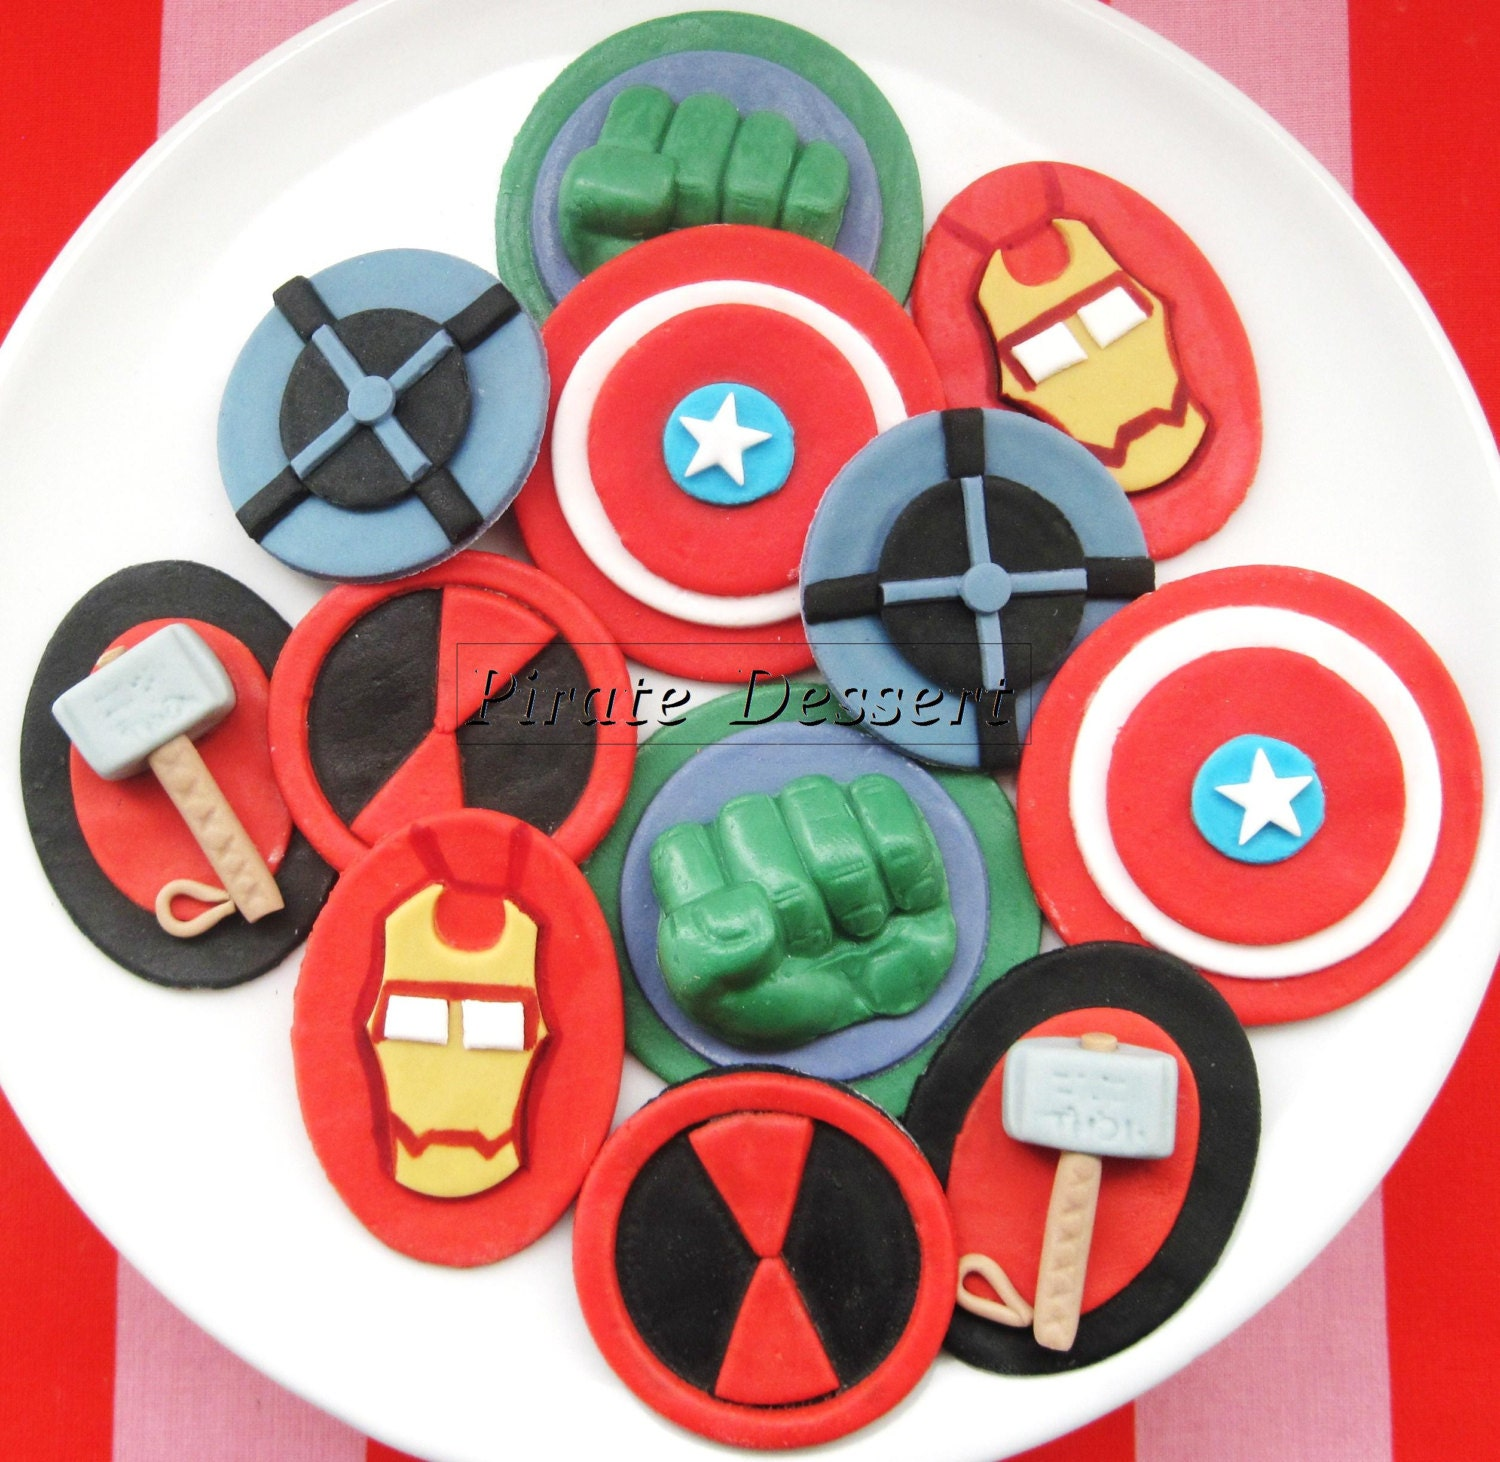 The AVENGERS Edible SUPERHERO Cupcake Toppers by PirateDessert